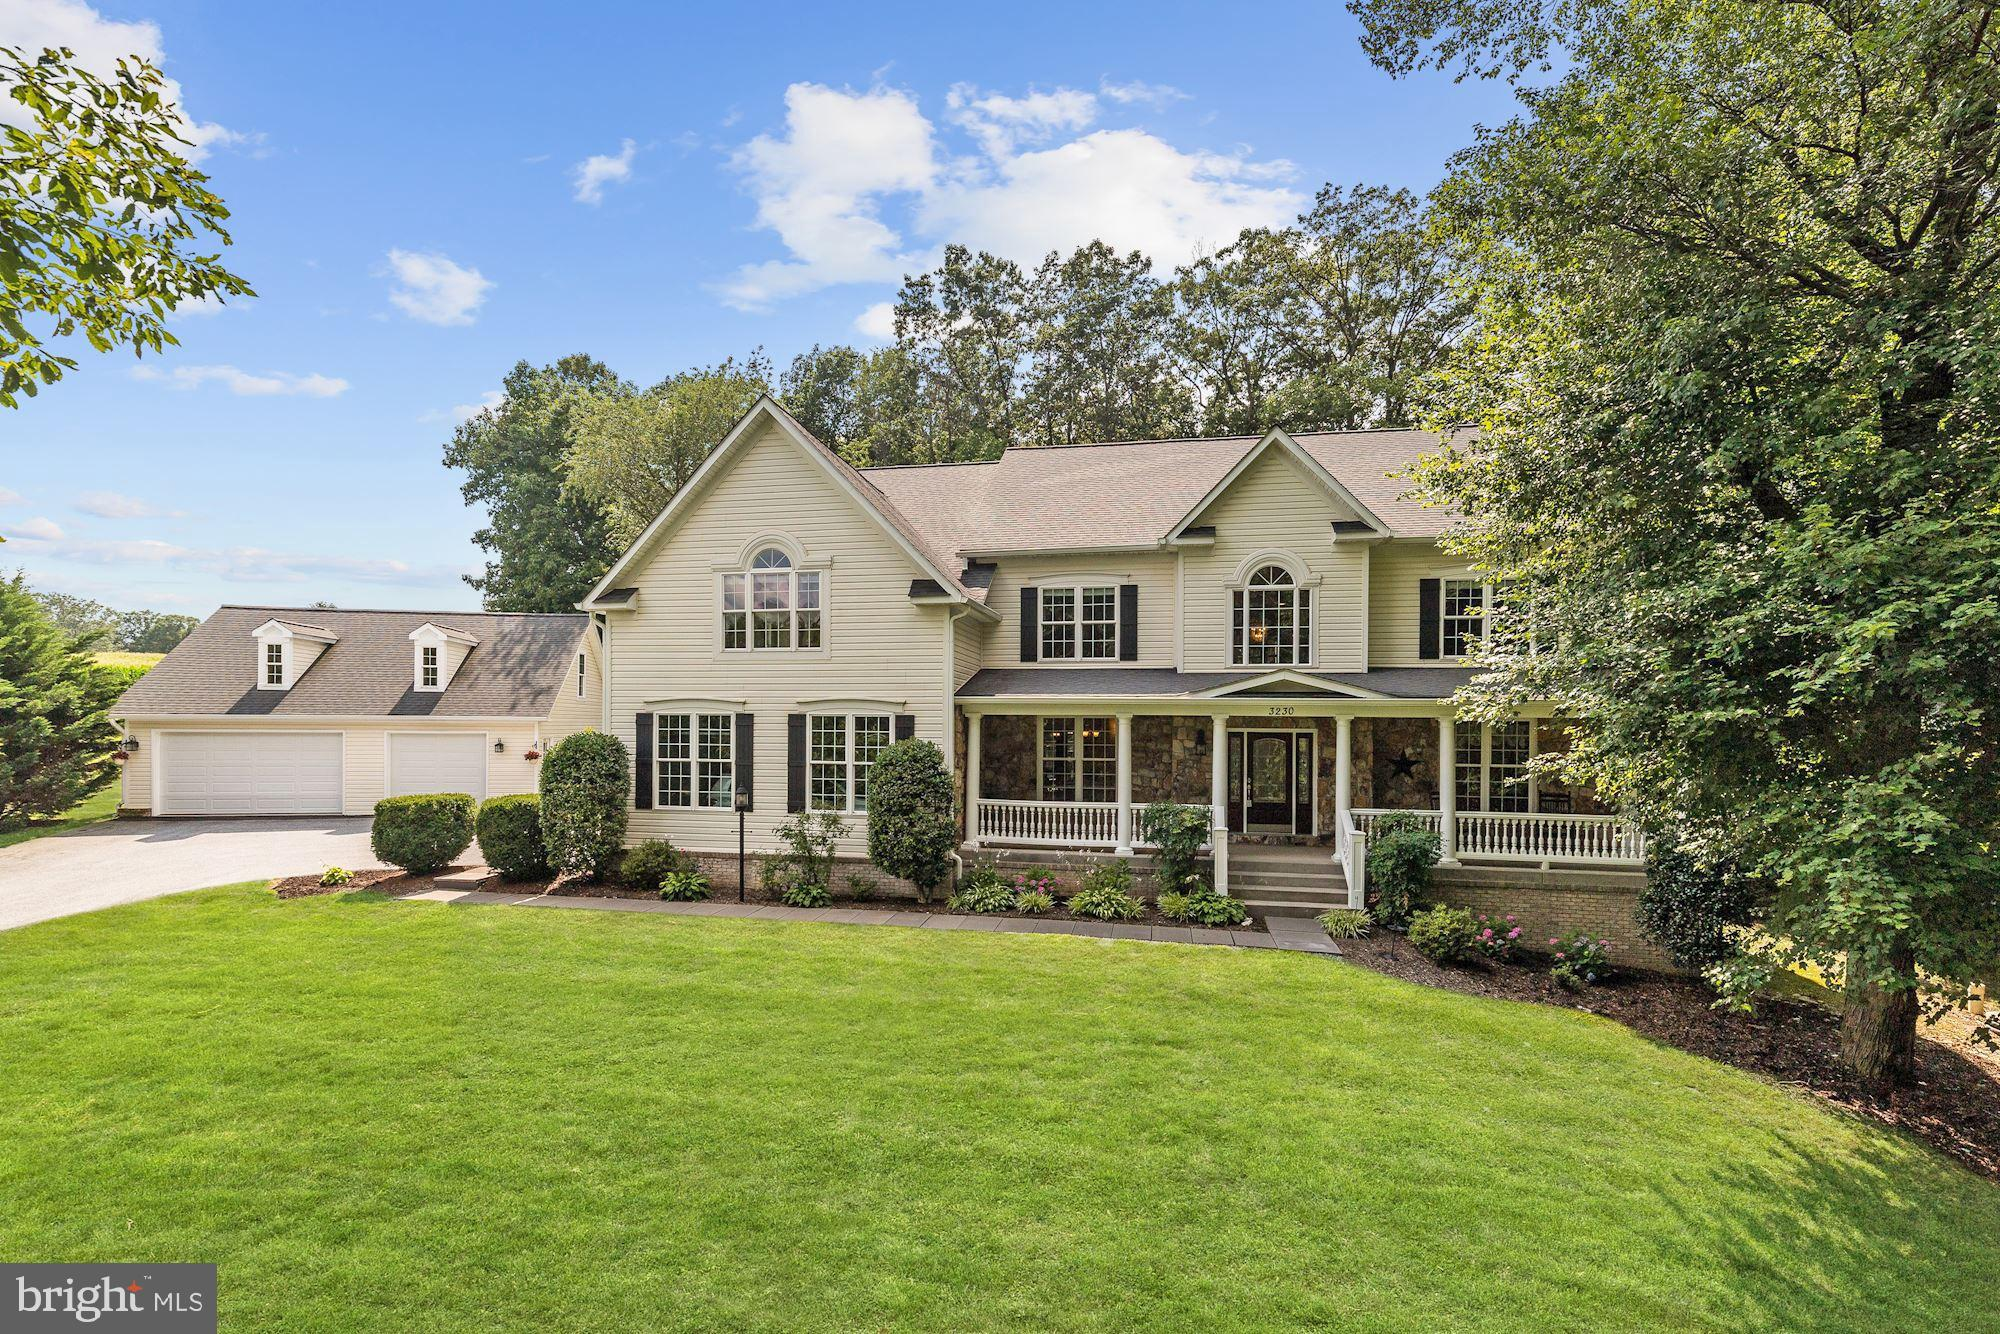 3230 SIDETRACKED DRIVE, NEW WINDSOR, MD 21776